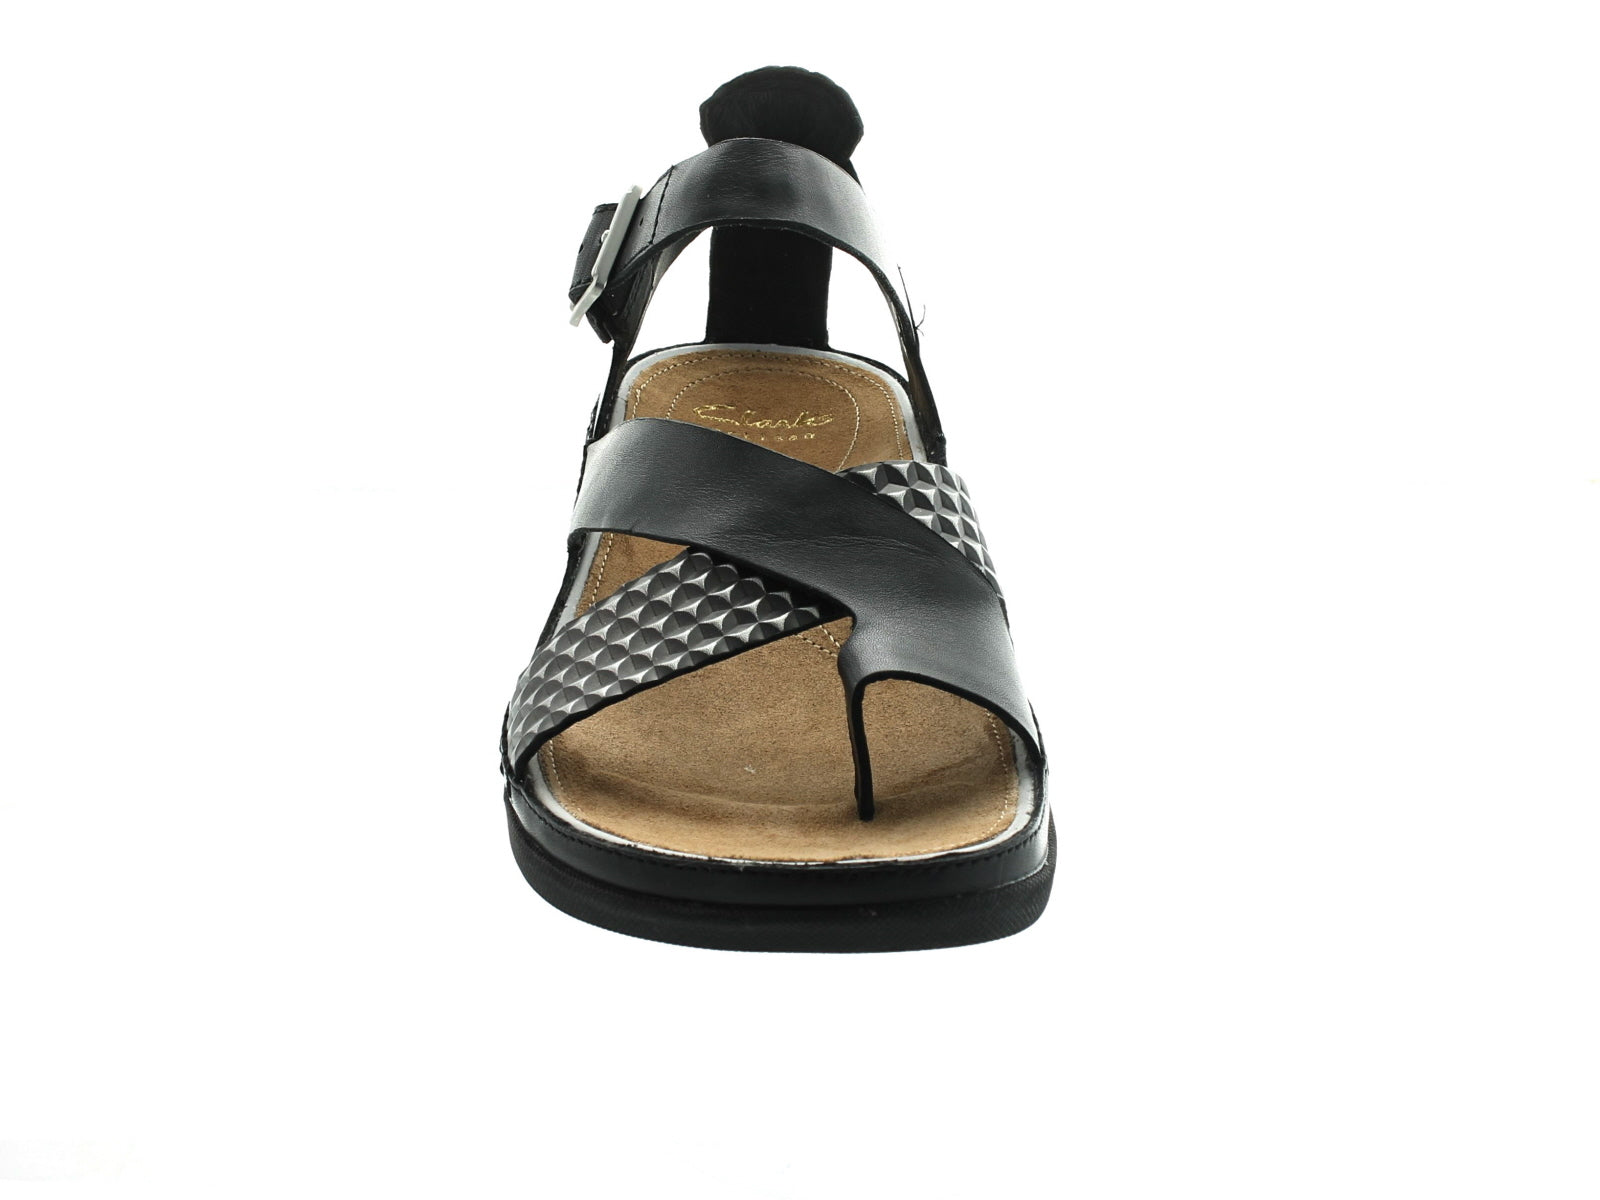 Clarks Tri Ariana in Black Combi front view